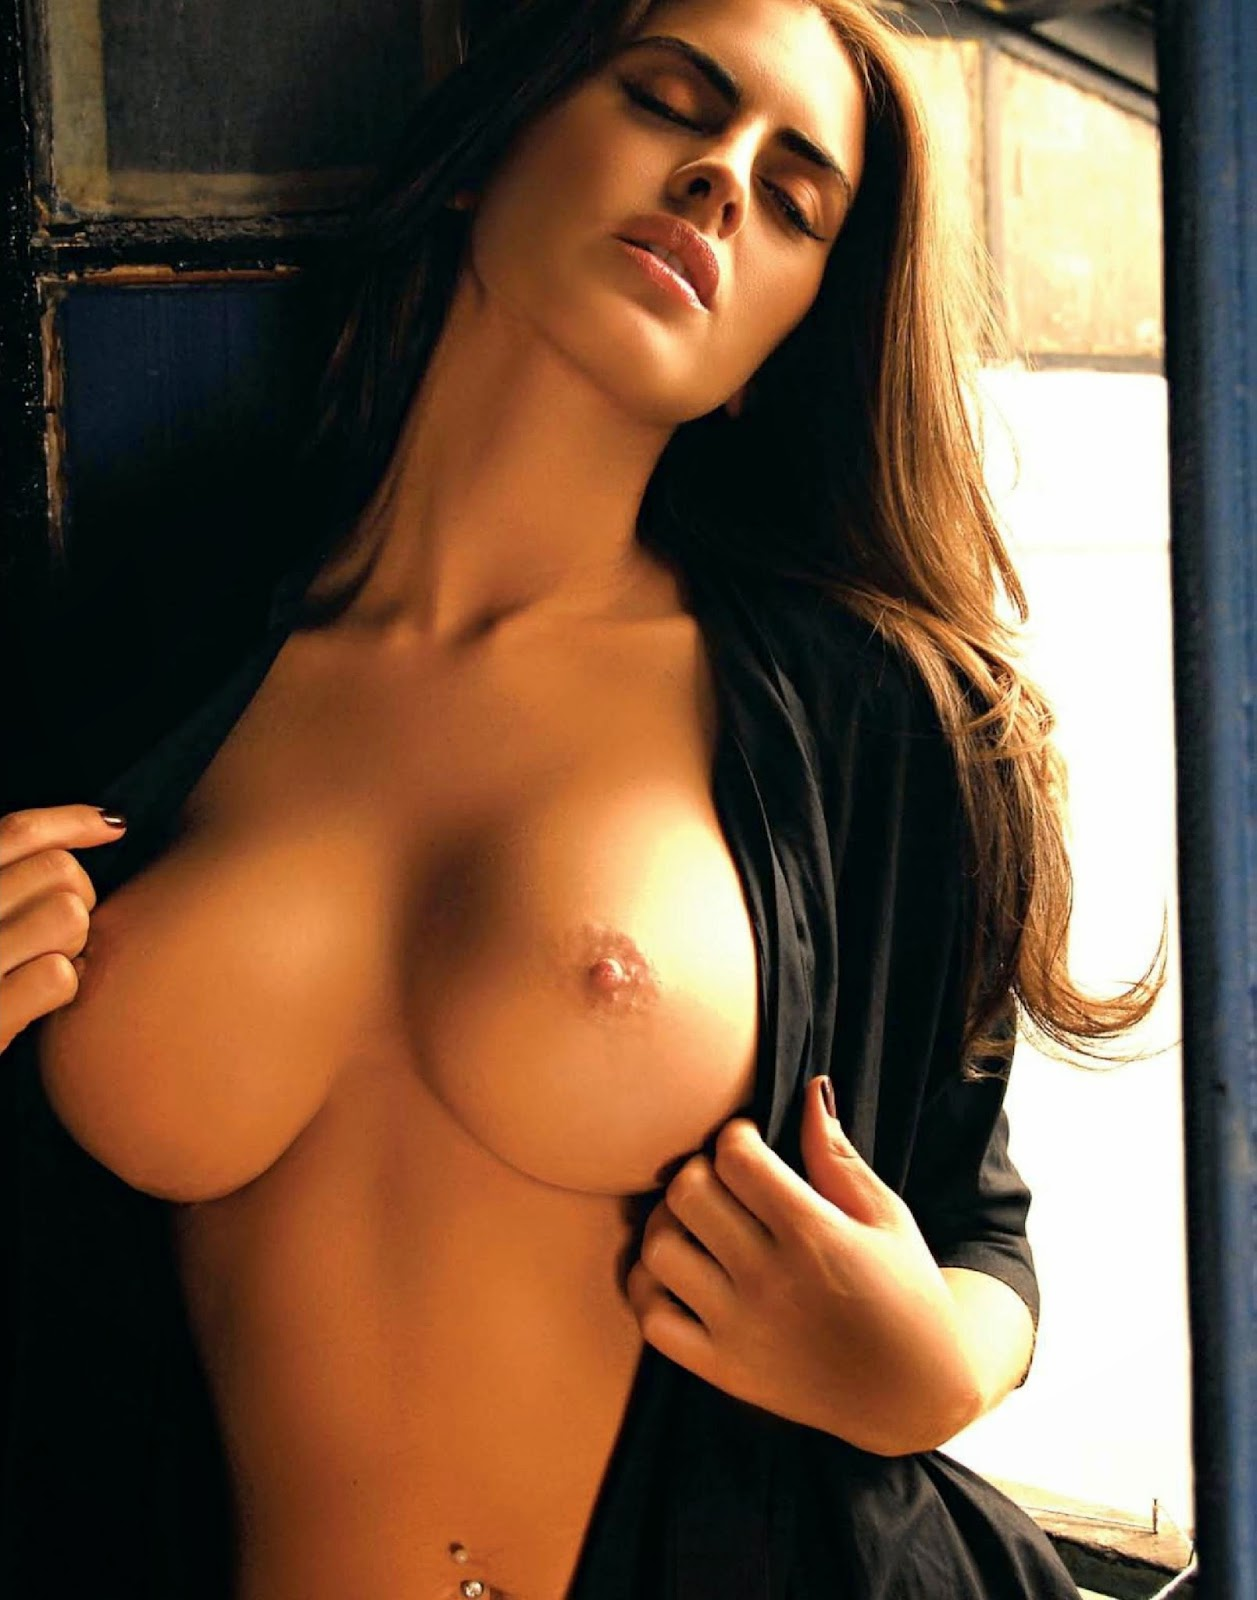 Playboy Argentina August Issue Nude Picture Bluedols